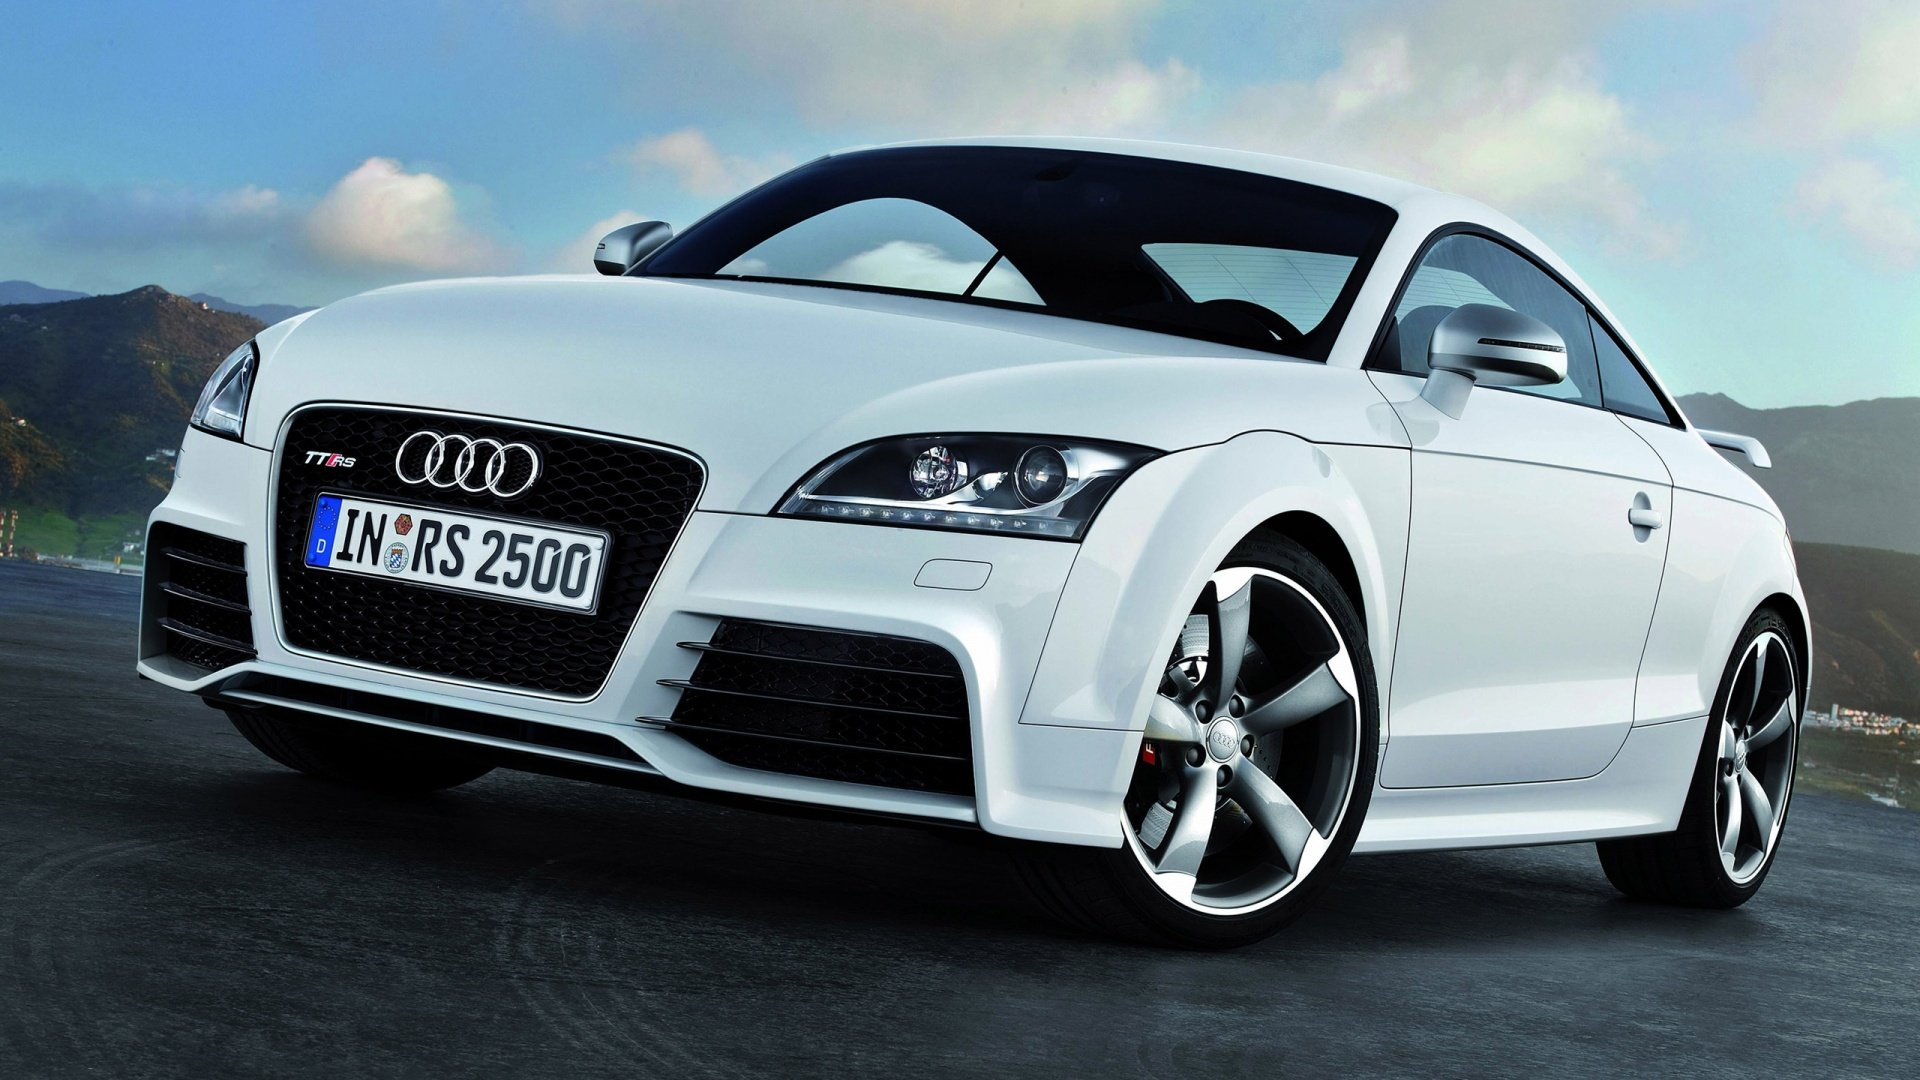 2012 Audi TT RS   High Definition Wallpapers   HD wallpapers 1920x1080